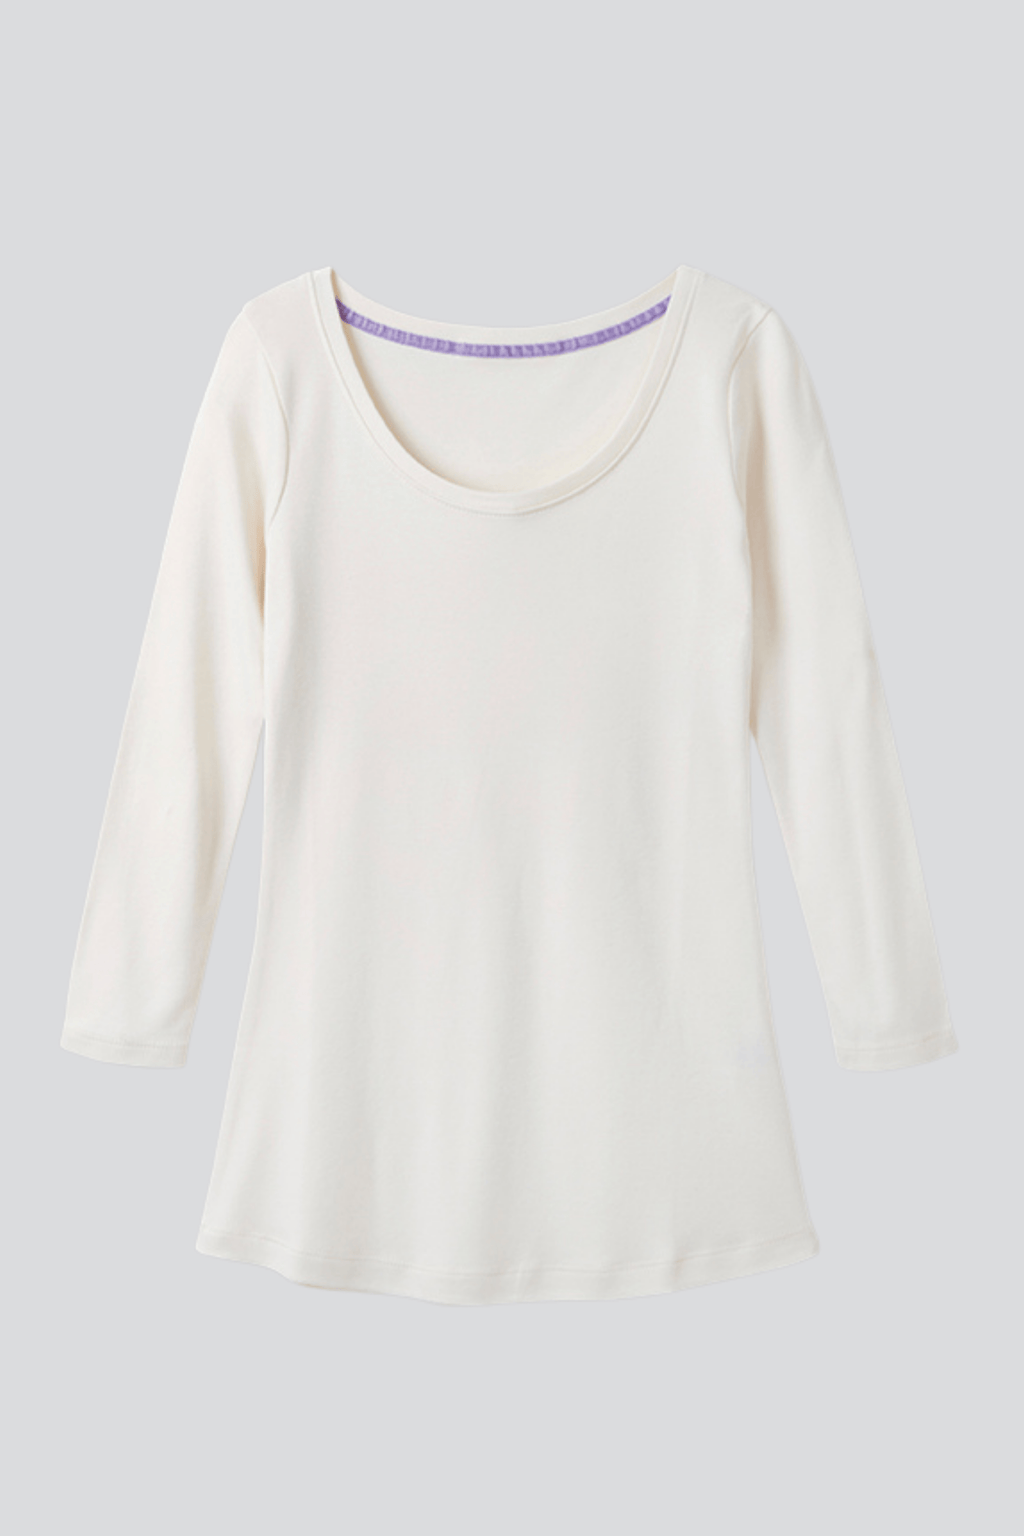 3/4 Sleeve Scoop Neck Cotton Modal Blend T-Shirt 3/4 Sleeve T-shirt Lavender Hill Clothing